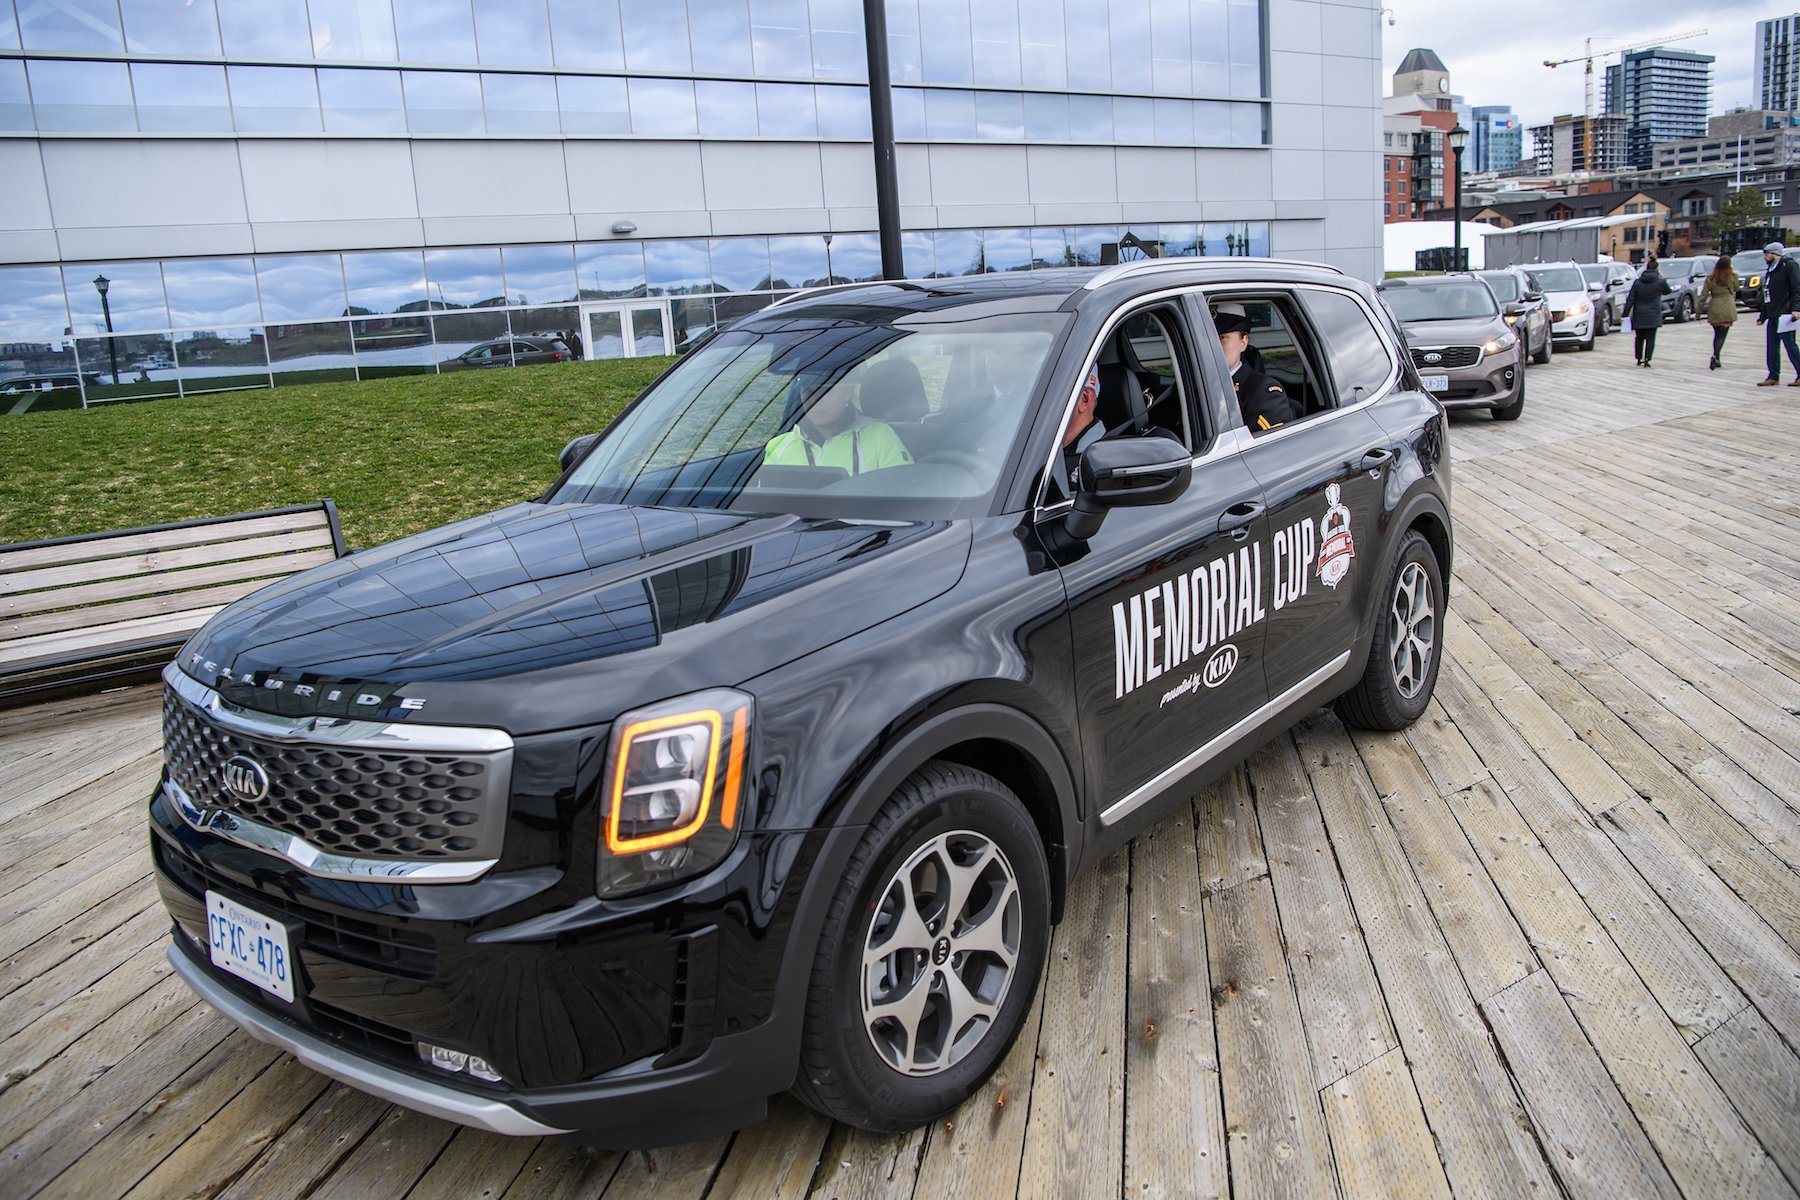 Kia Telluride at the Memorial Cup